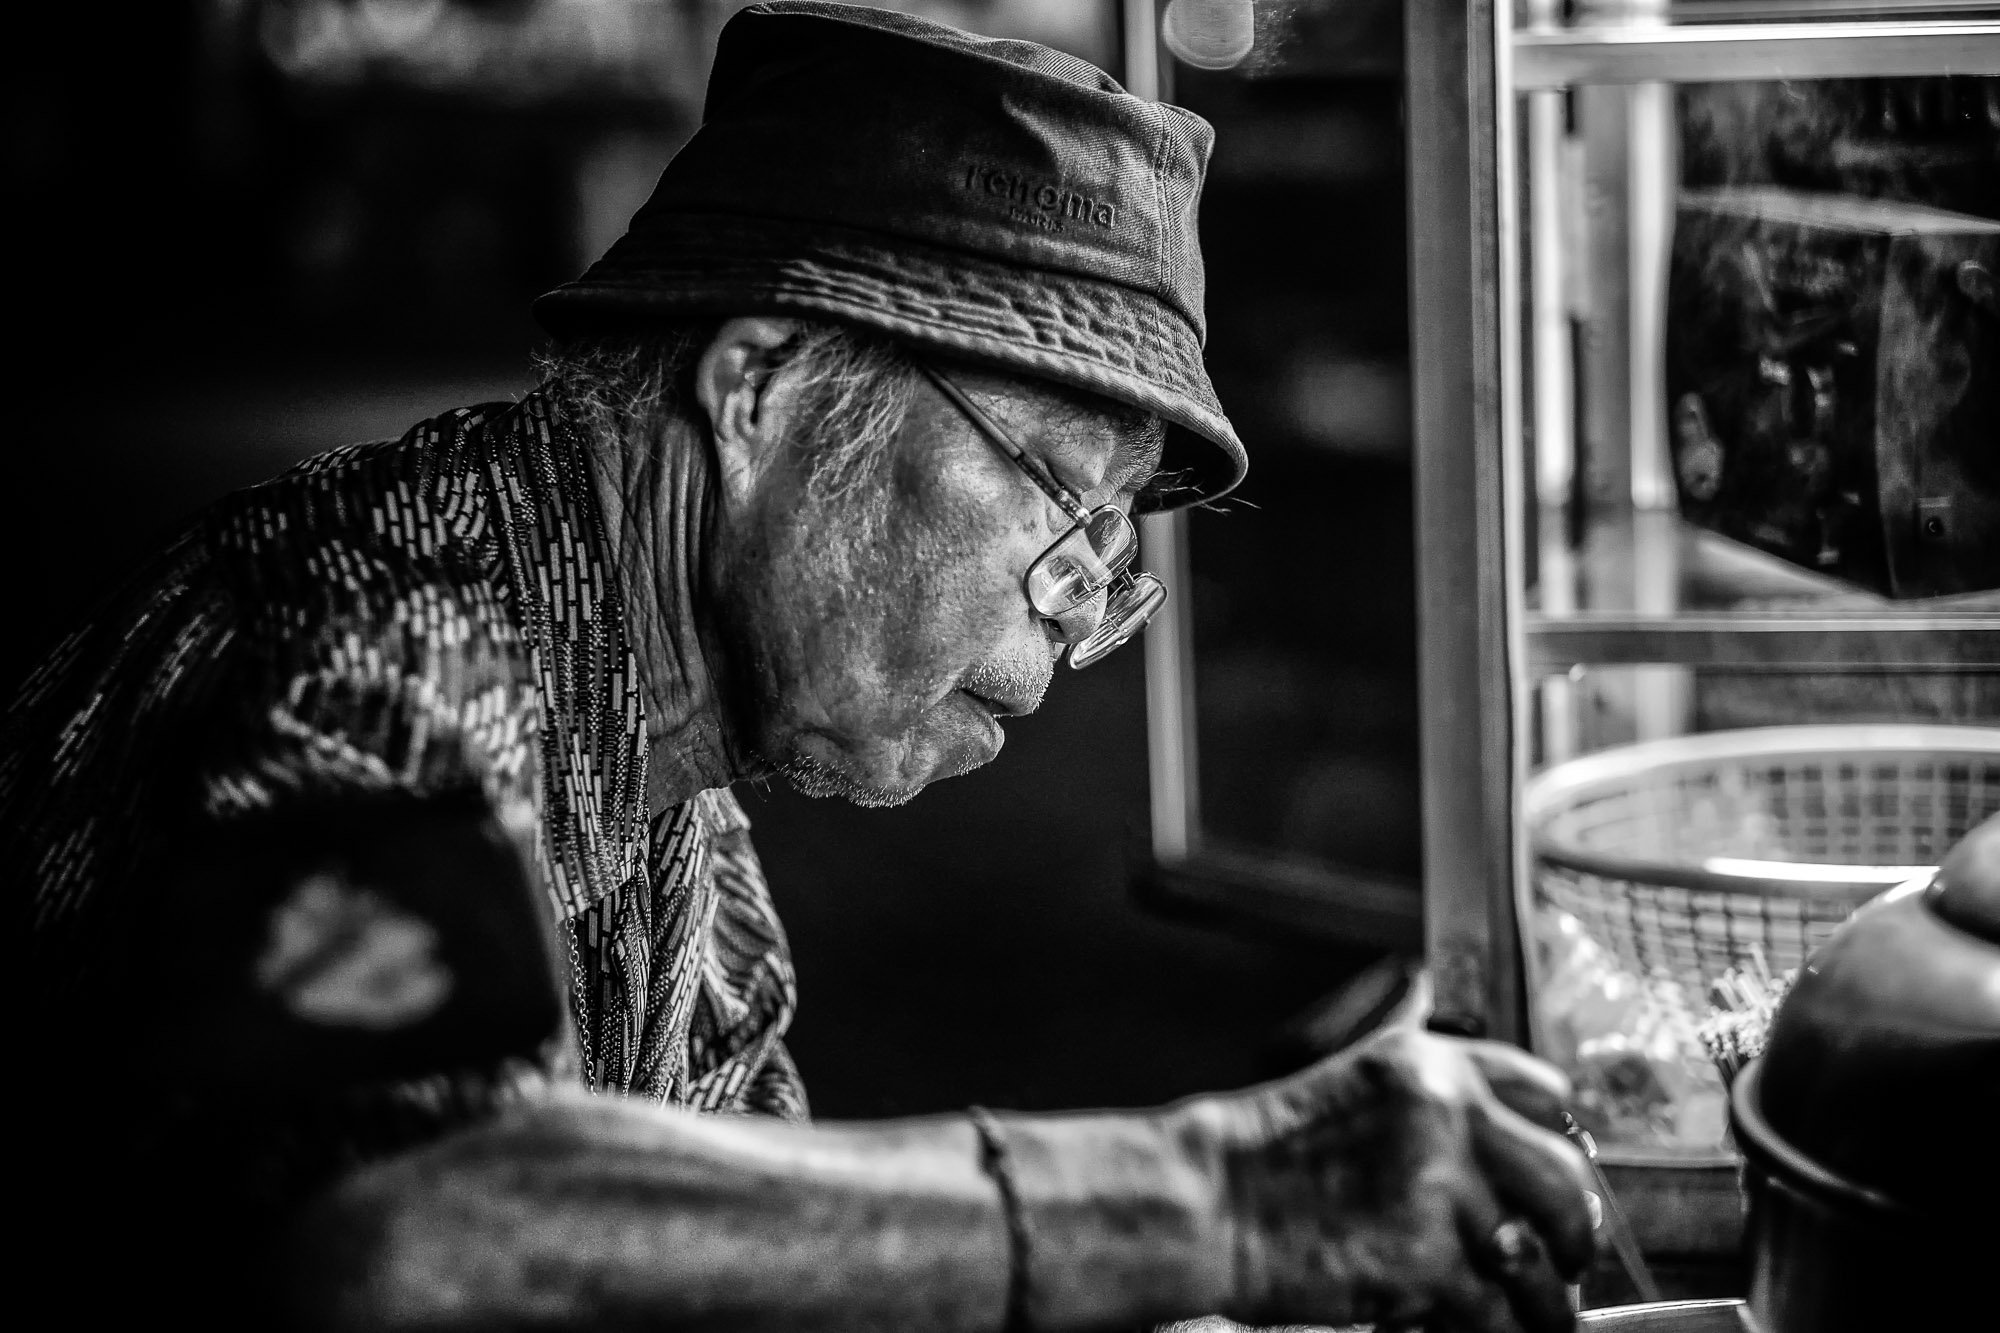 CHIANG MAI thailand asia street photography portrait food truck